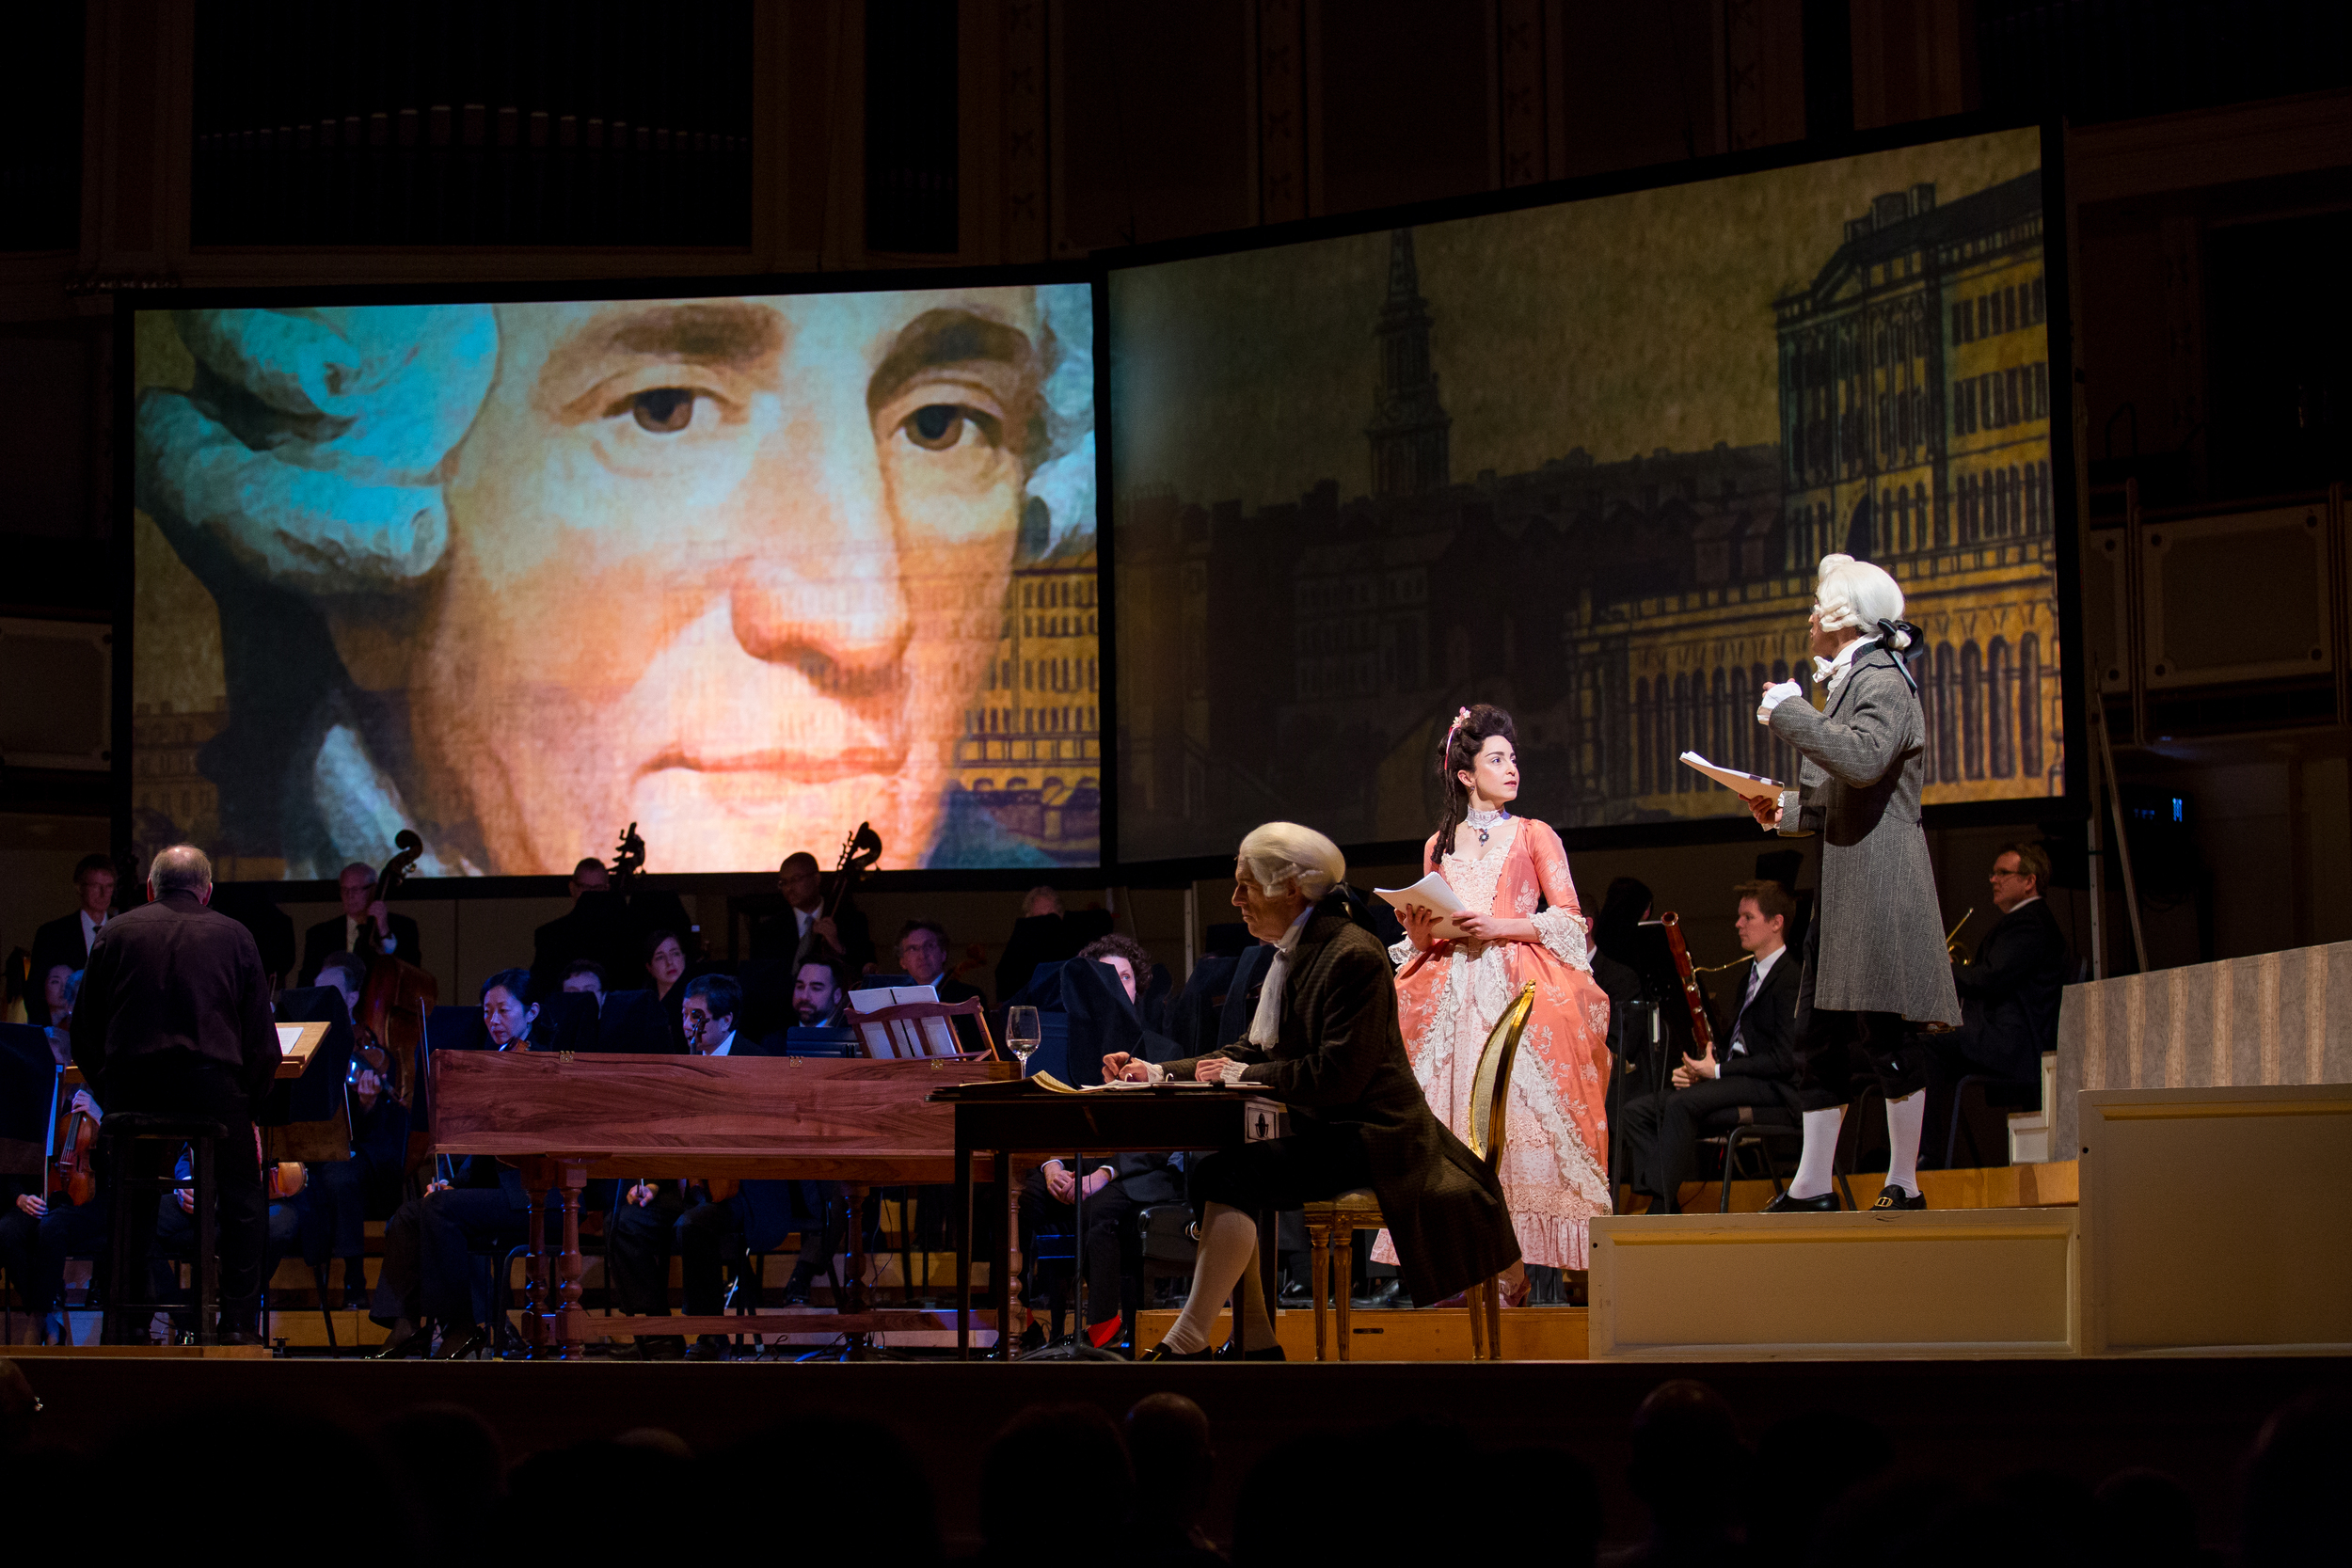 MR. HAYDEN GOES TO LONDON - Chicago Symphony Orchestra